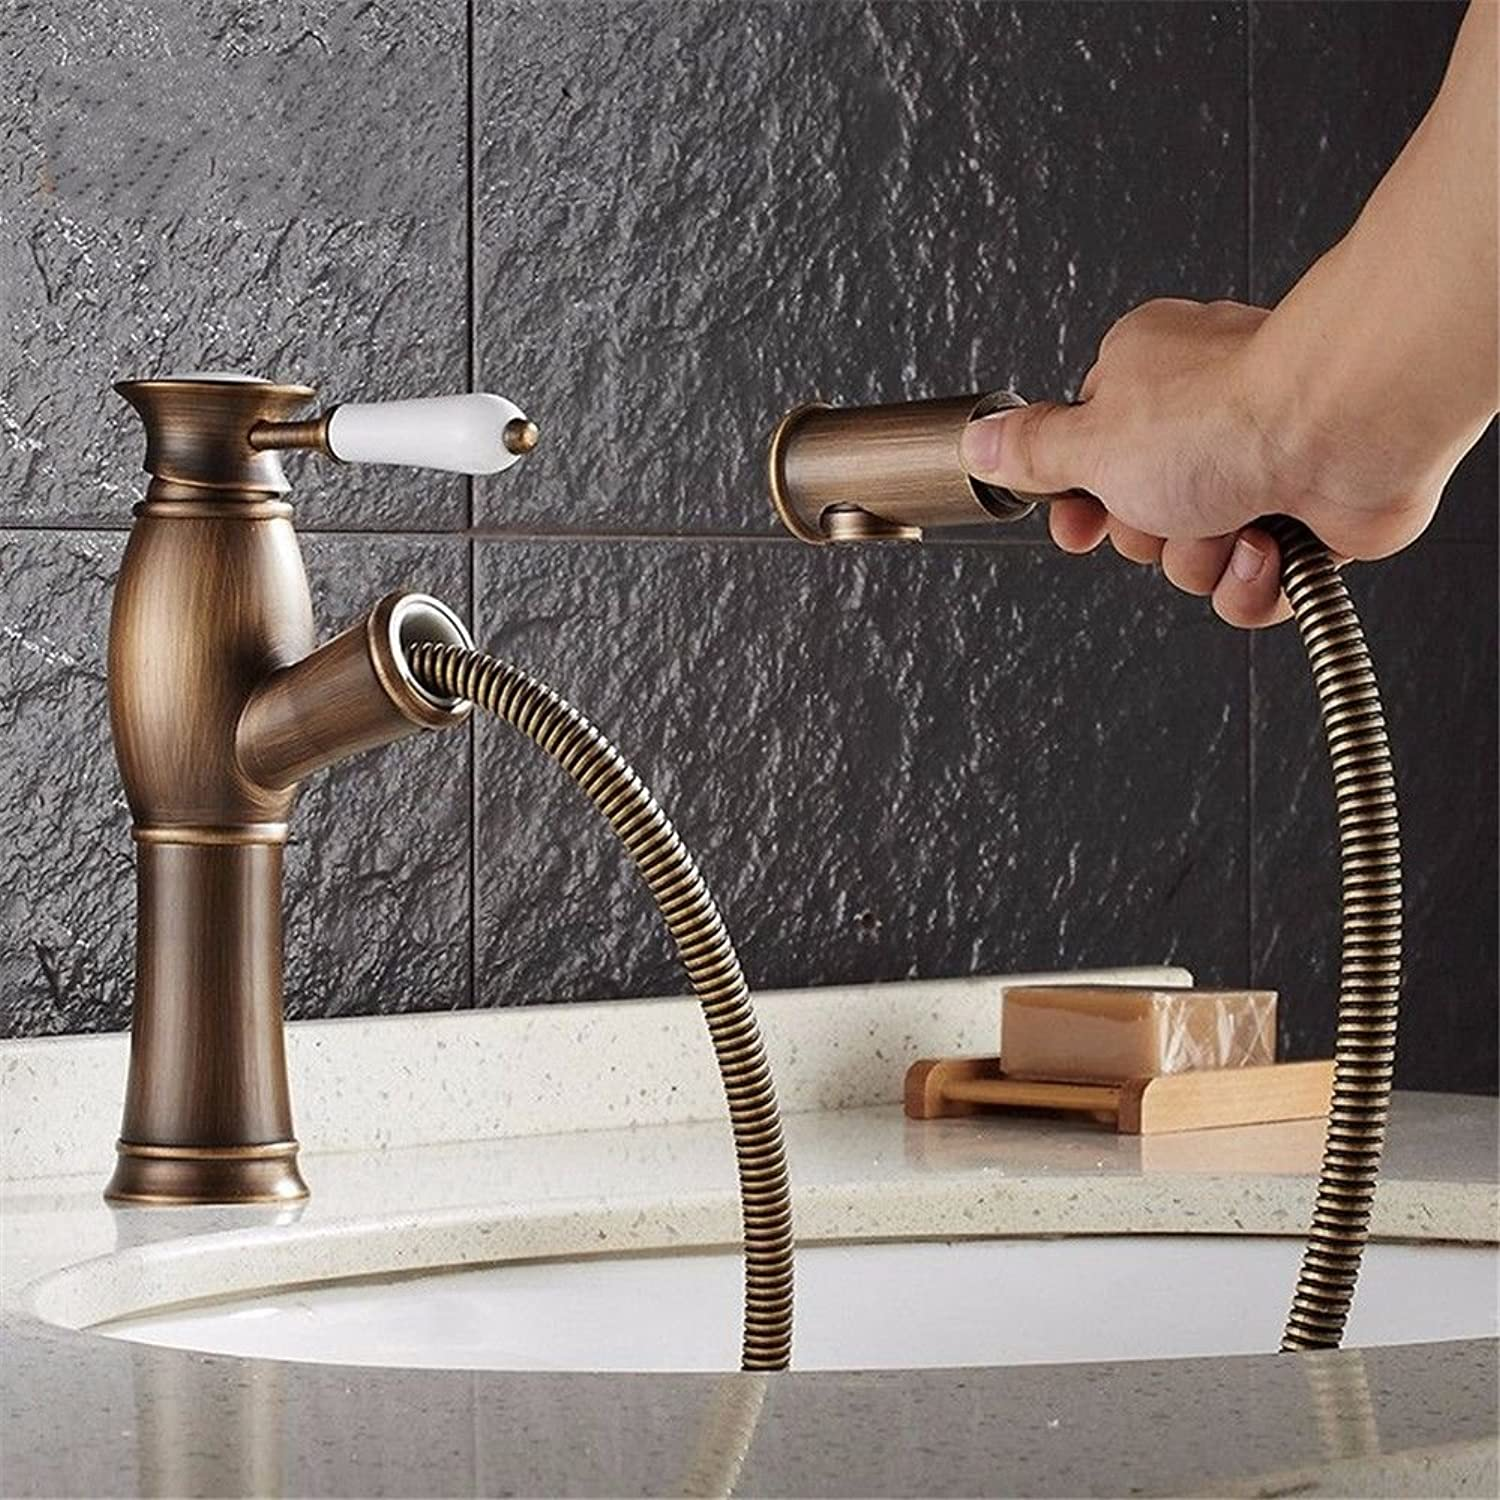 Lpophy Bathroom Sink Mixer Taps Faucet Bath Waterfall Cold and Hot Water Tap for Washroom Bathroom and Kitchen Hot and Cold Antique Pull Ceramic Handle